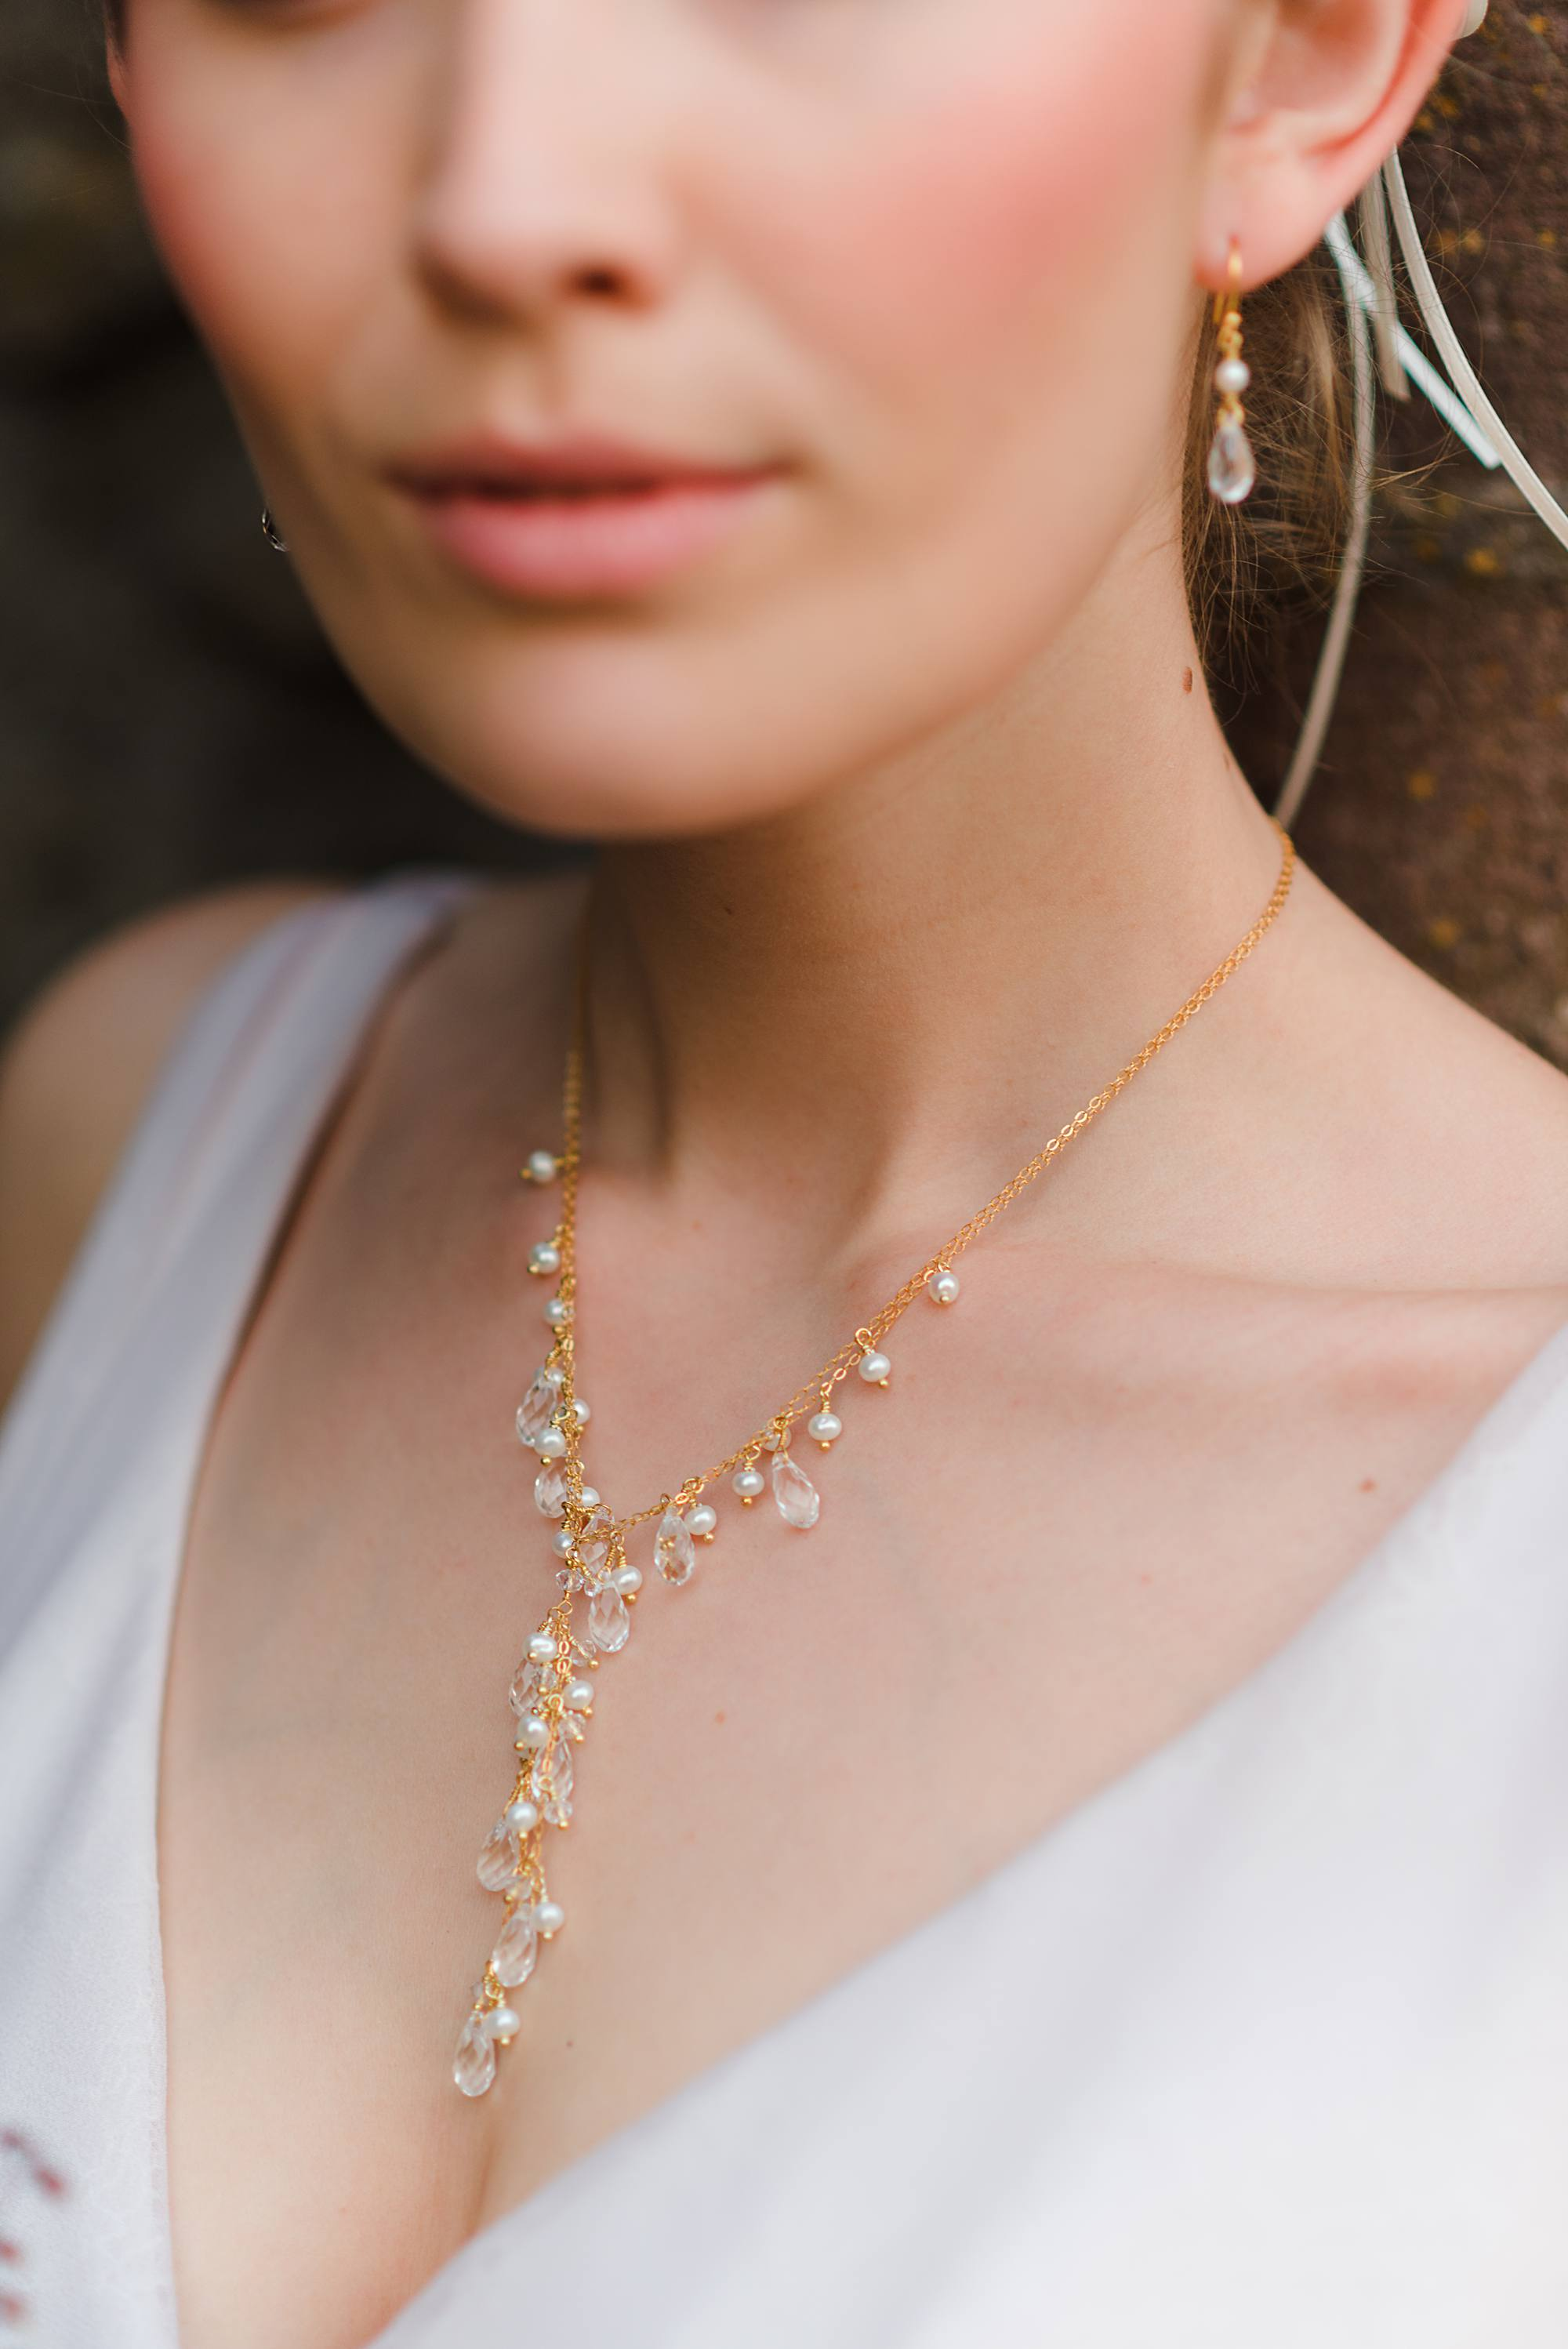 Bridal necklace with crystal drops